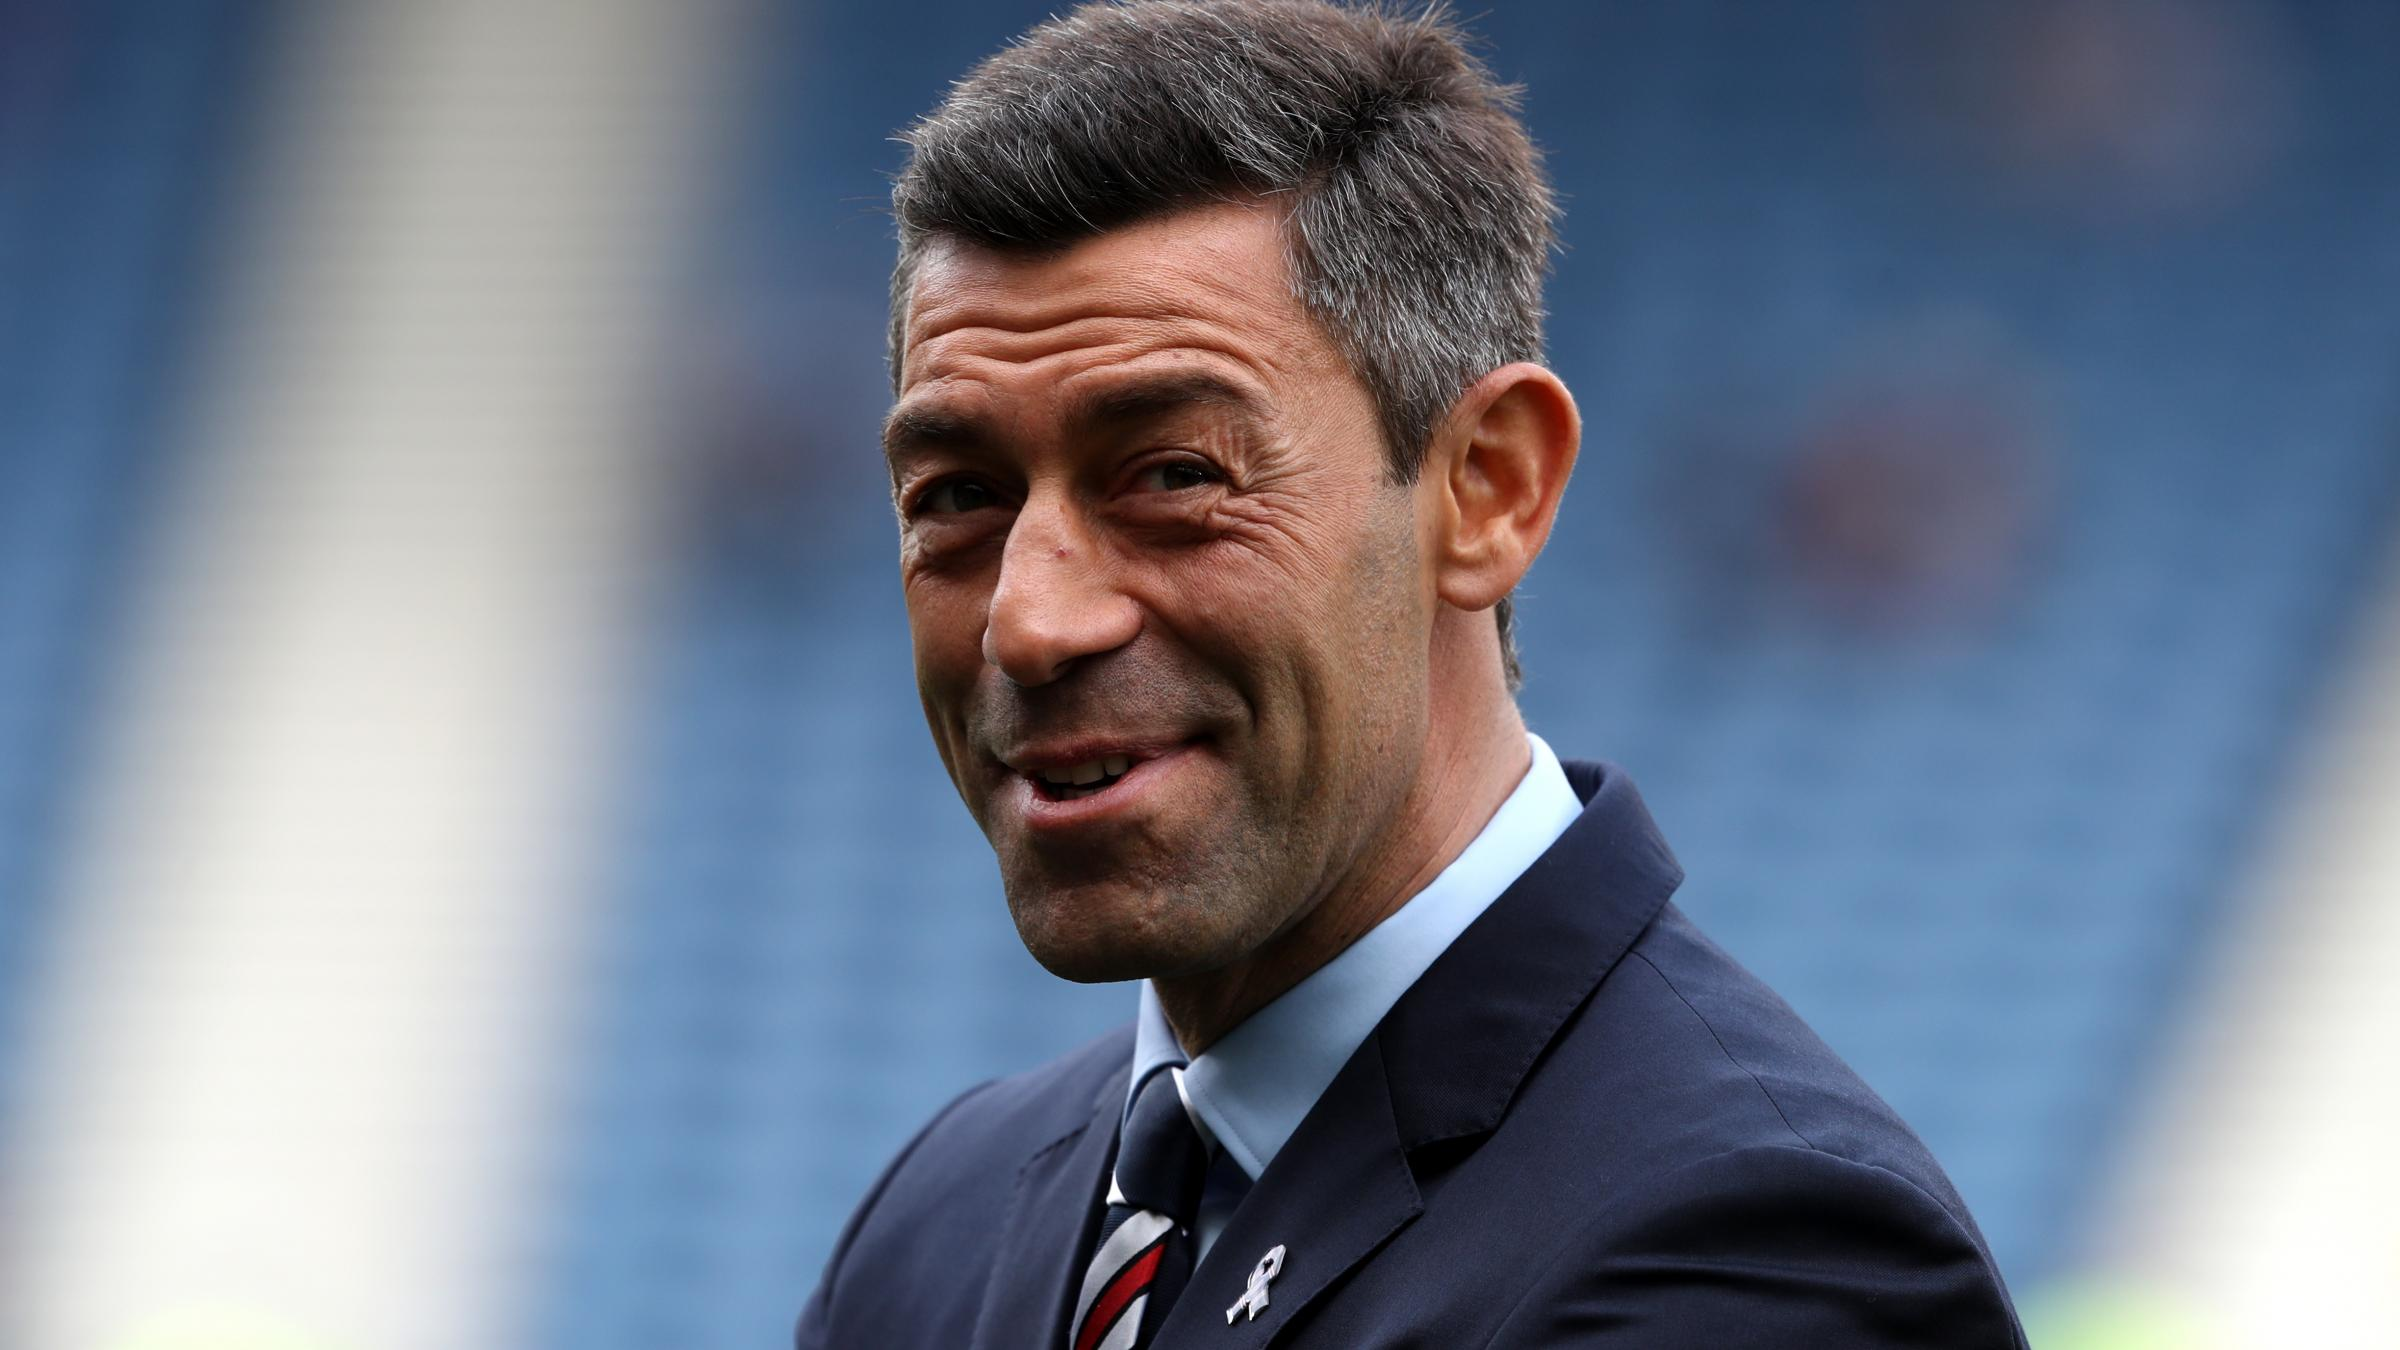 Rangers face trip to Luxembourg to play Progres Niederkorn in Europa